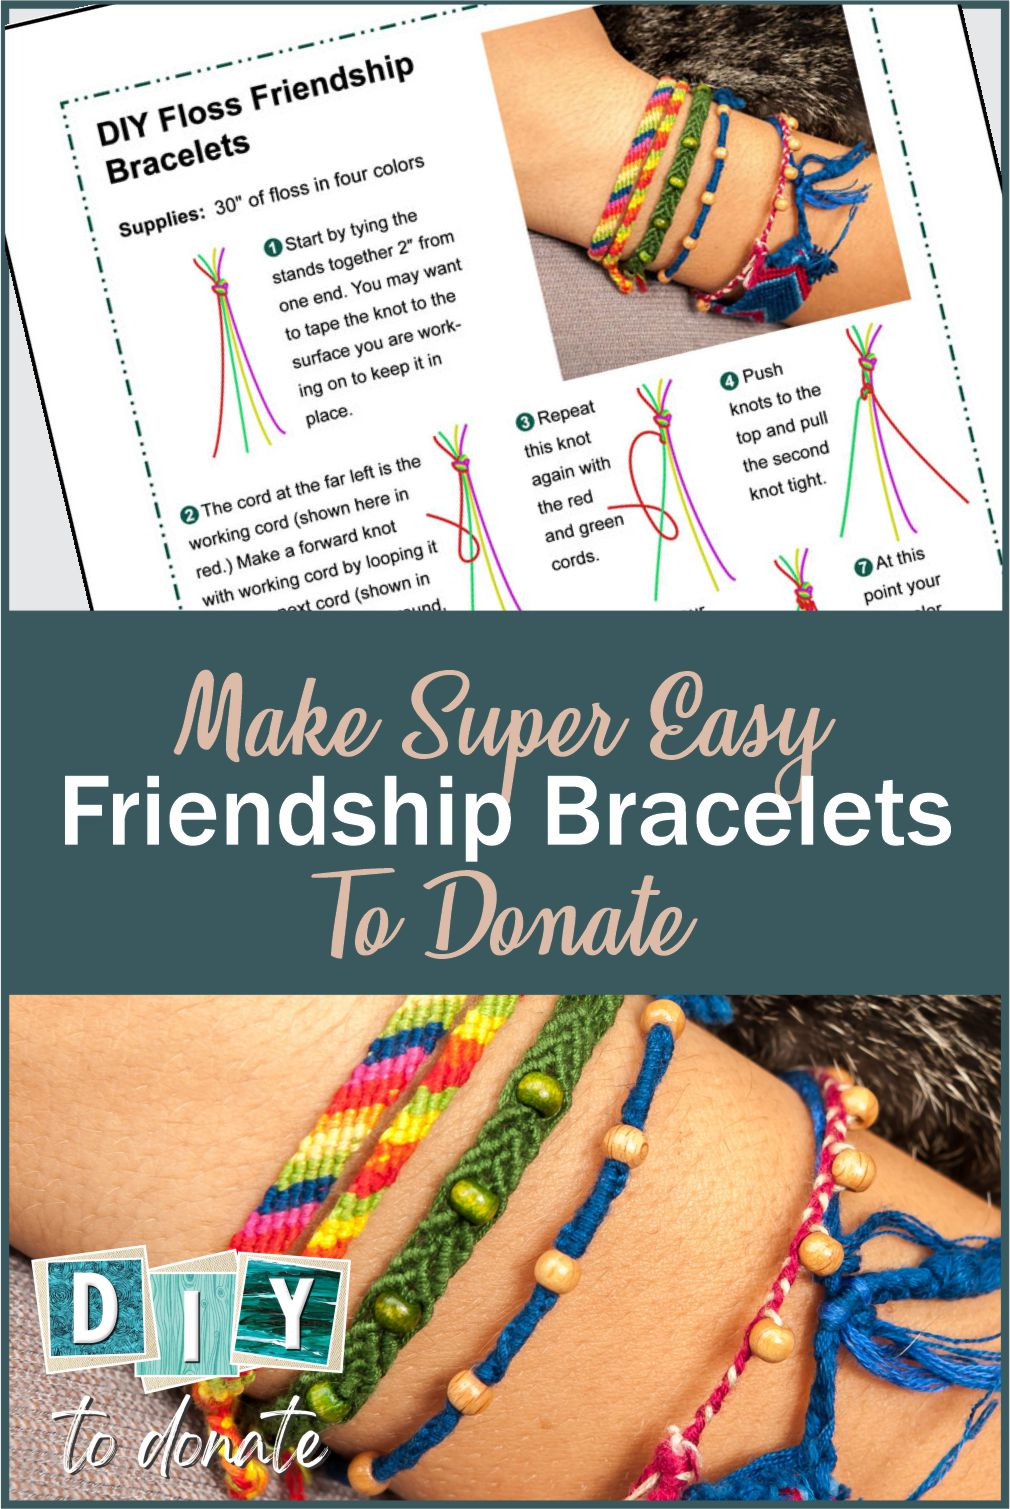 Learn how to make easy friendship bracelets. These step-by-step instructions will have you knotting in no time. Make a bunch and donate some! #diytodonate #diy #friendshipbracelets #bracelets #friendship #share #donate #donation #helper #communityservice